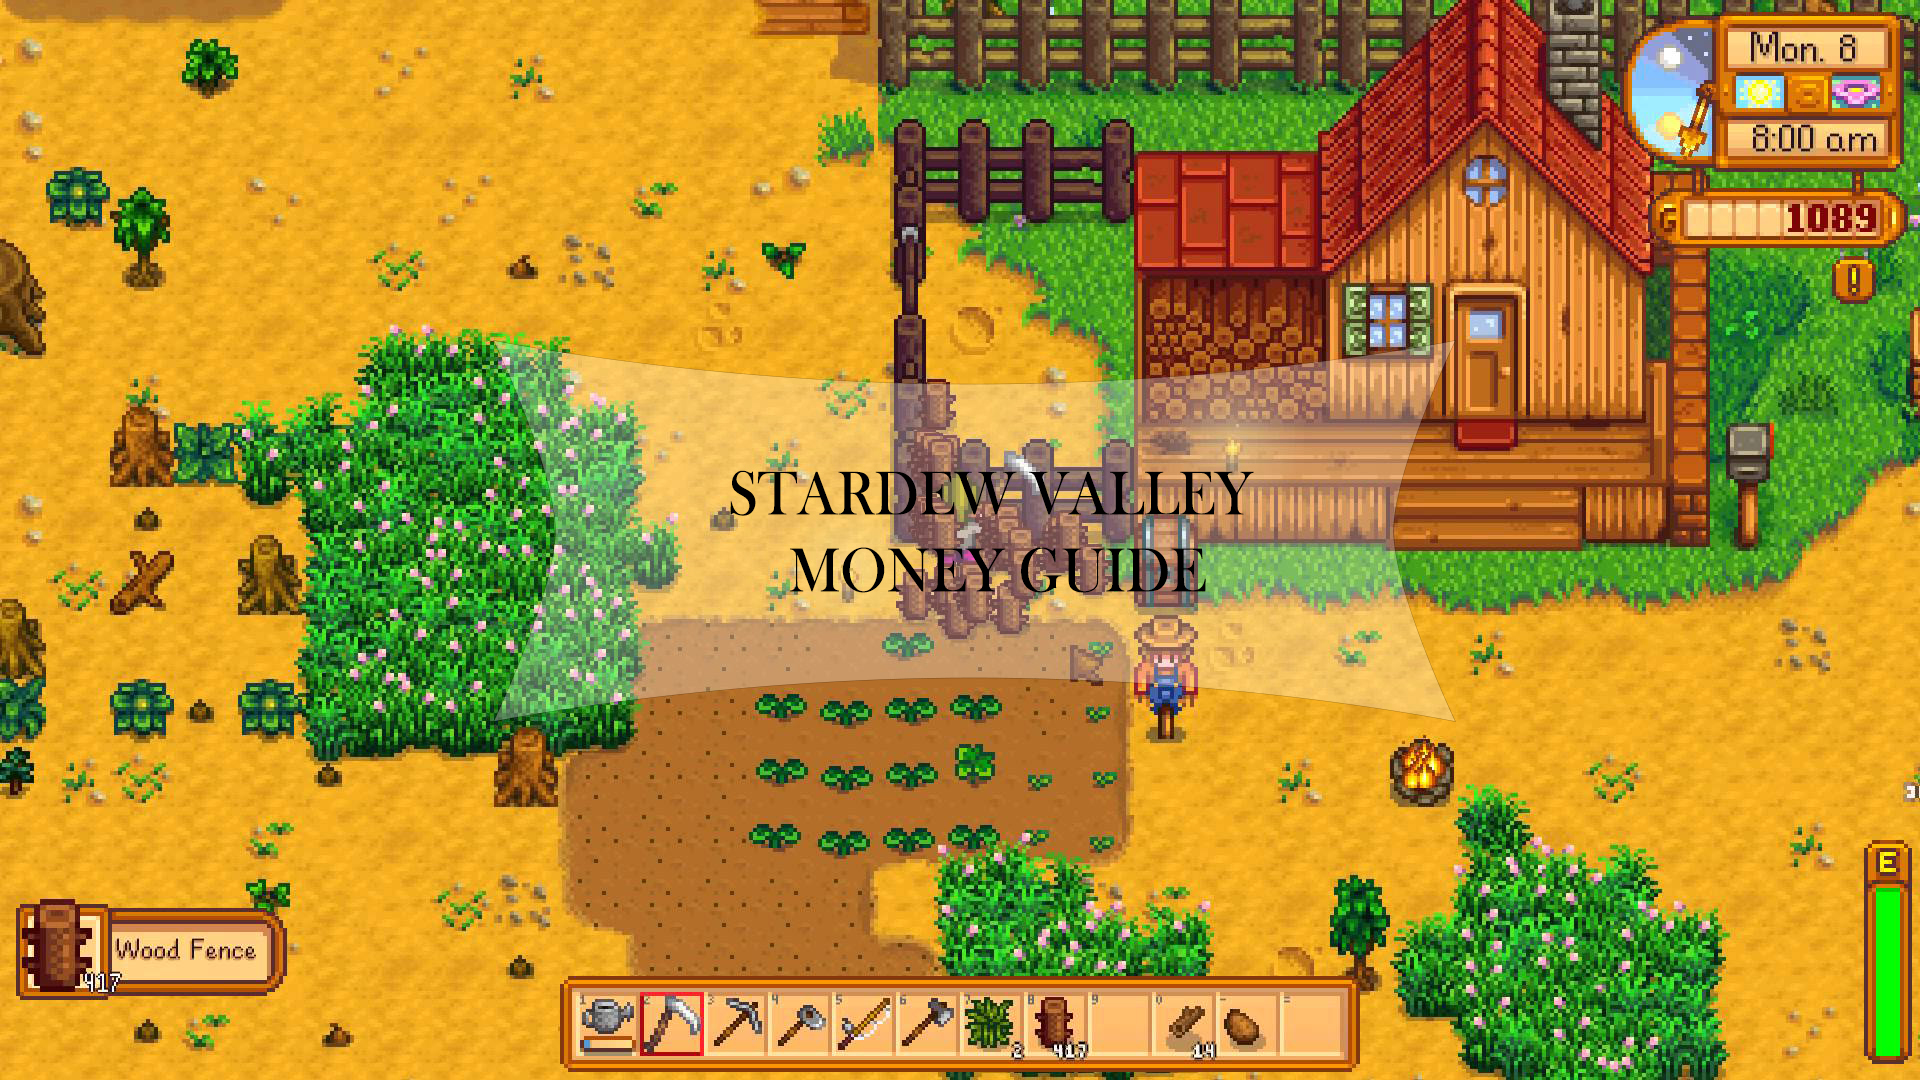 Stardew valley money guide